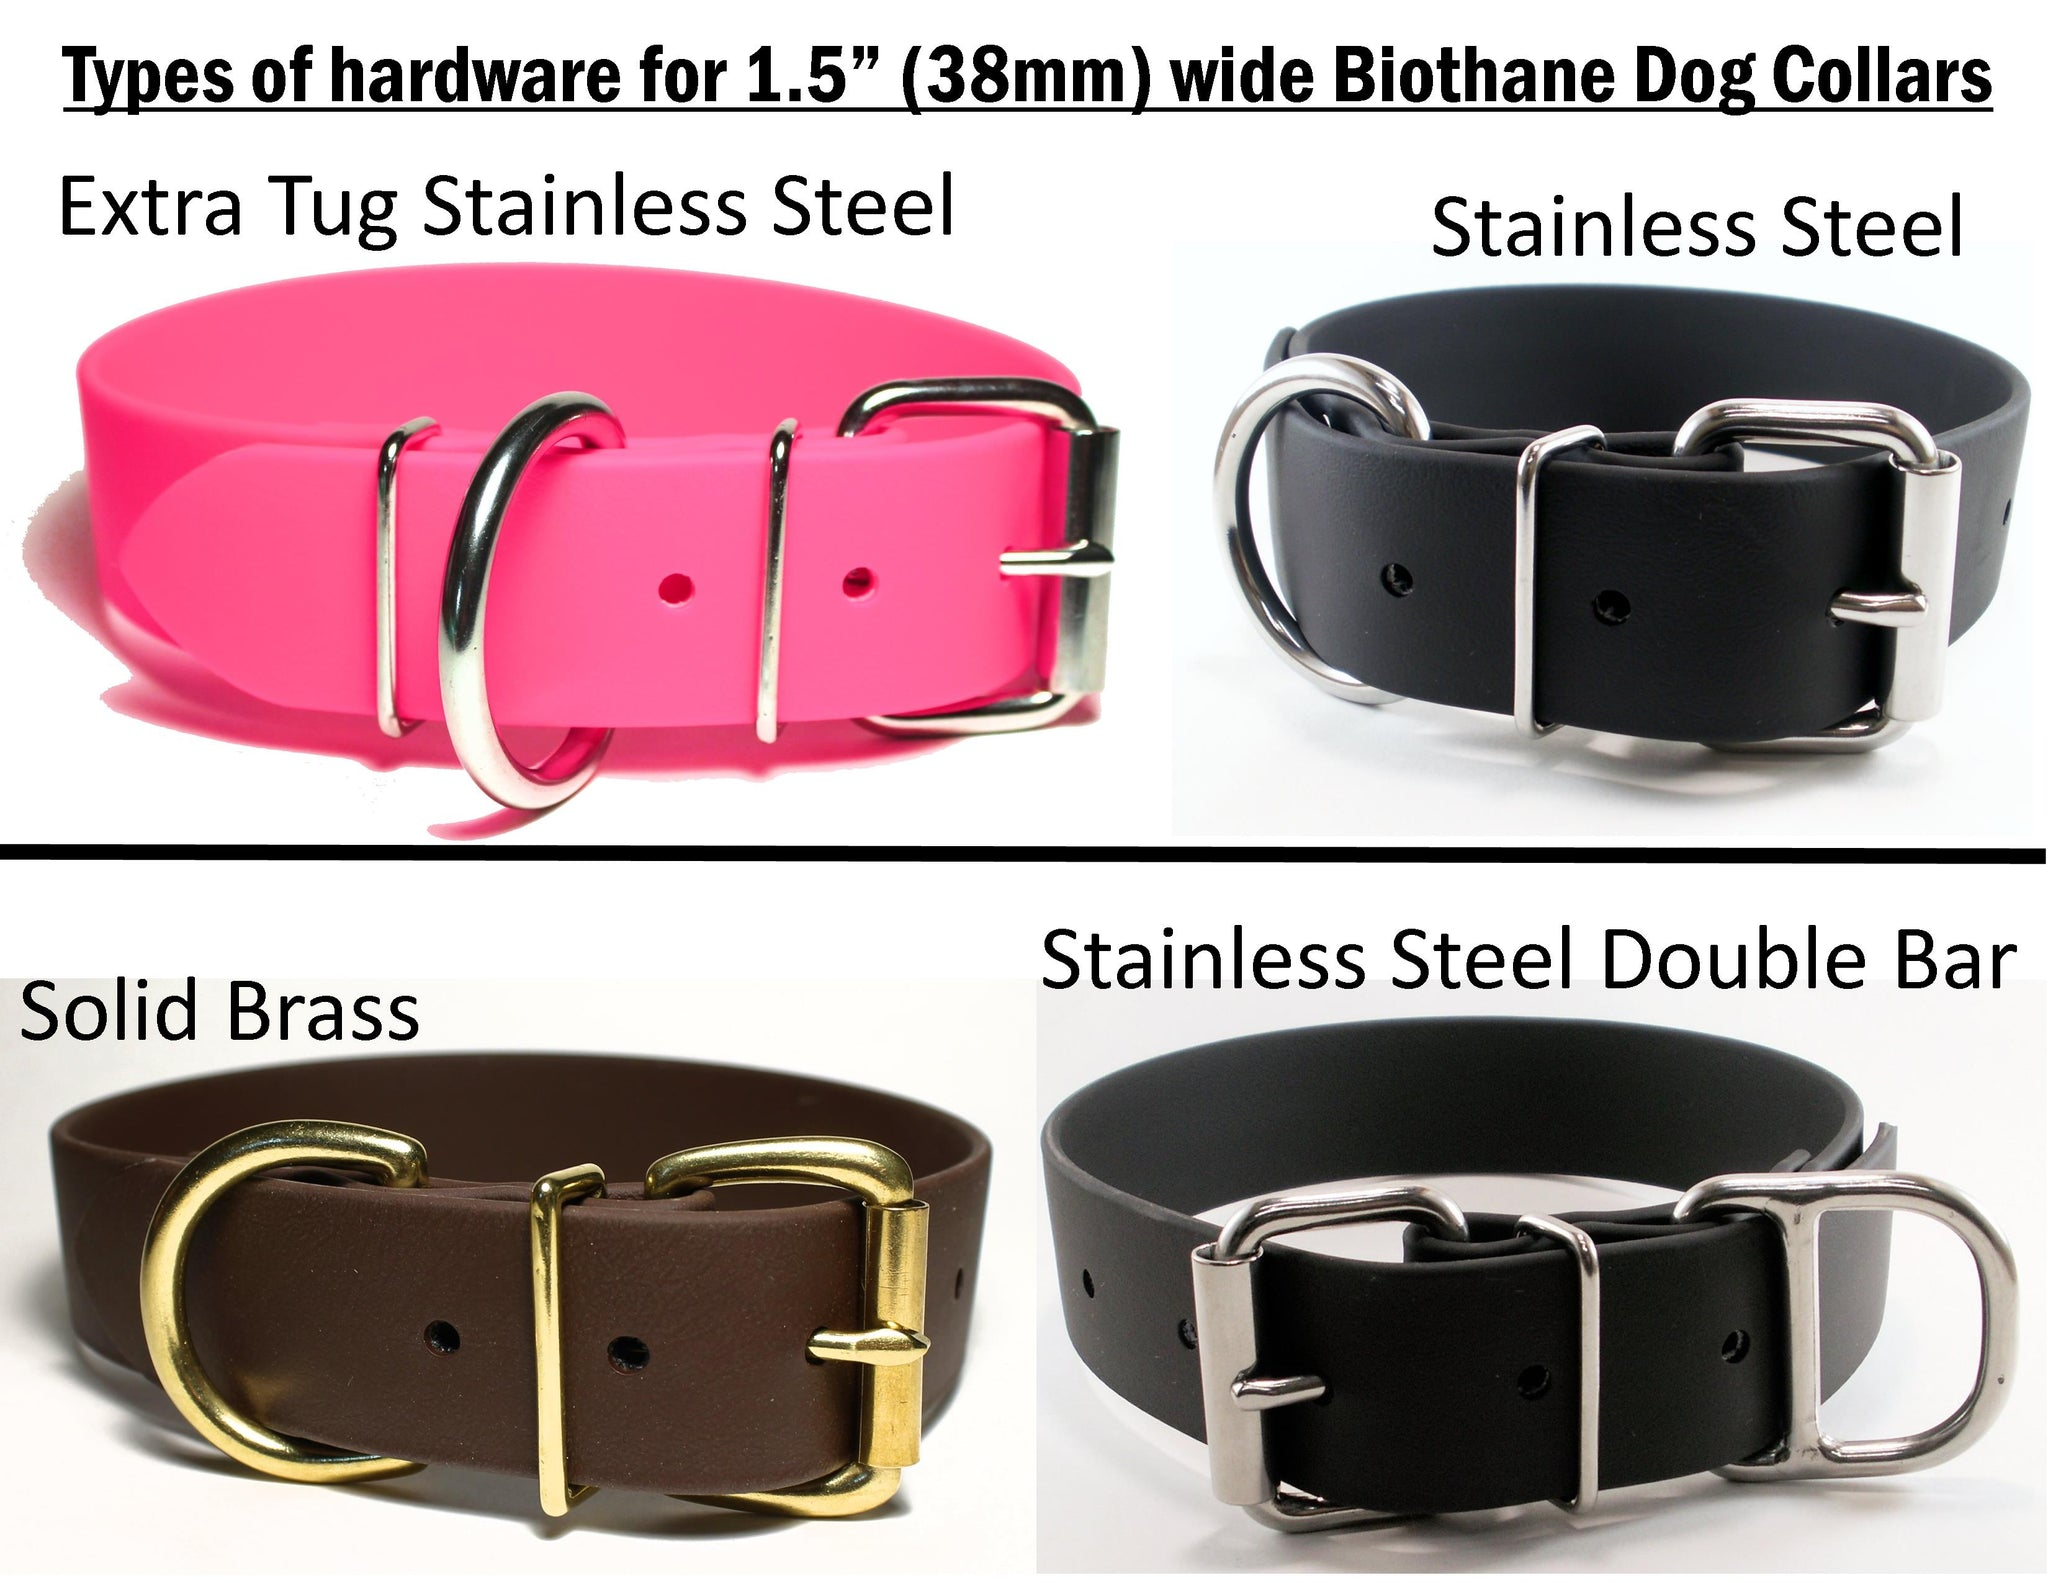 Snow White Biothane Dog Collar - Extra Wide - 1.5 inch (38mm) wide